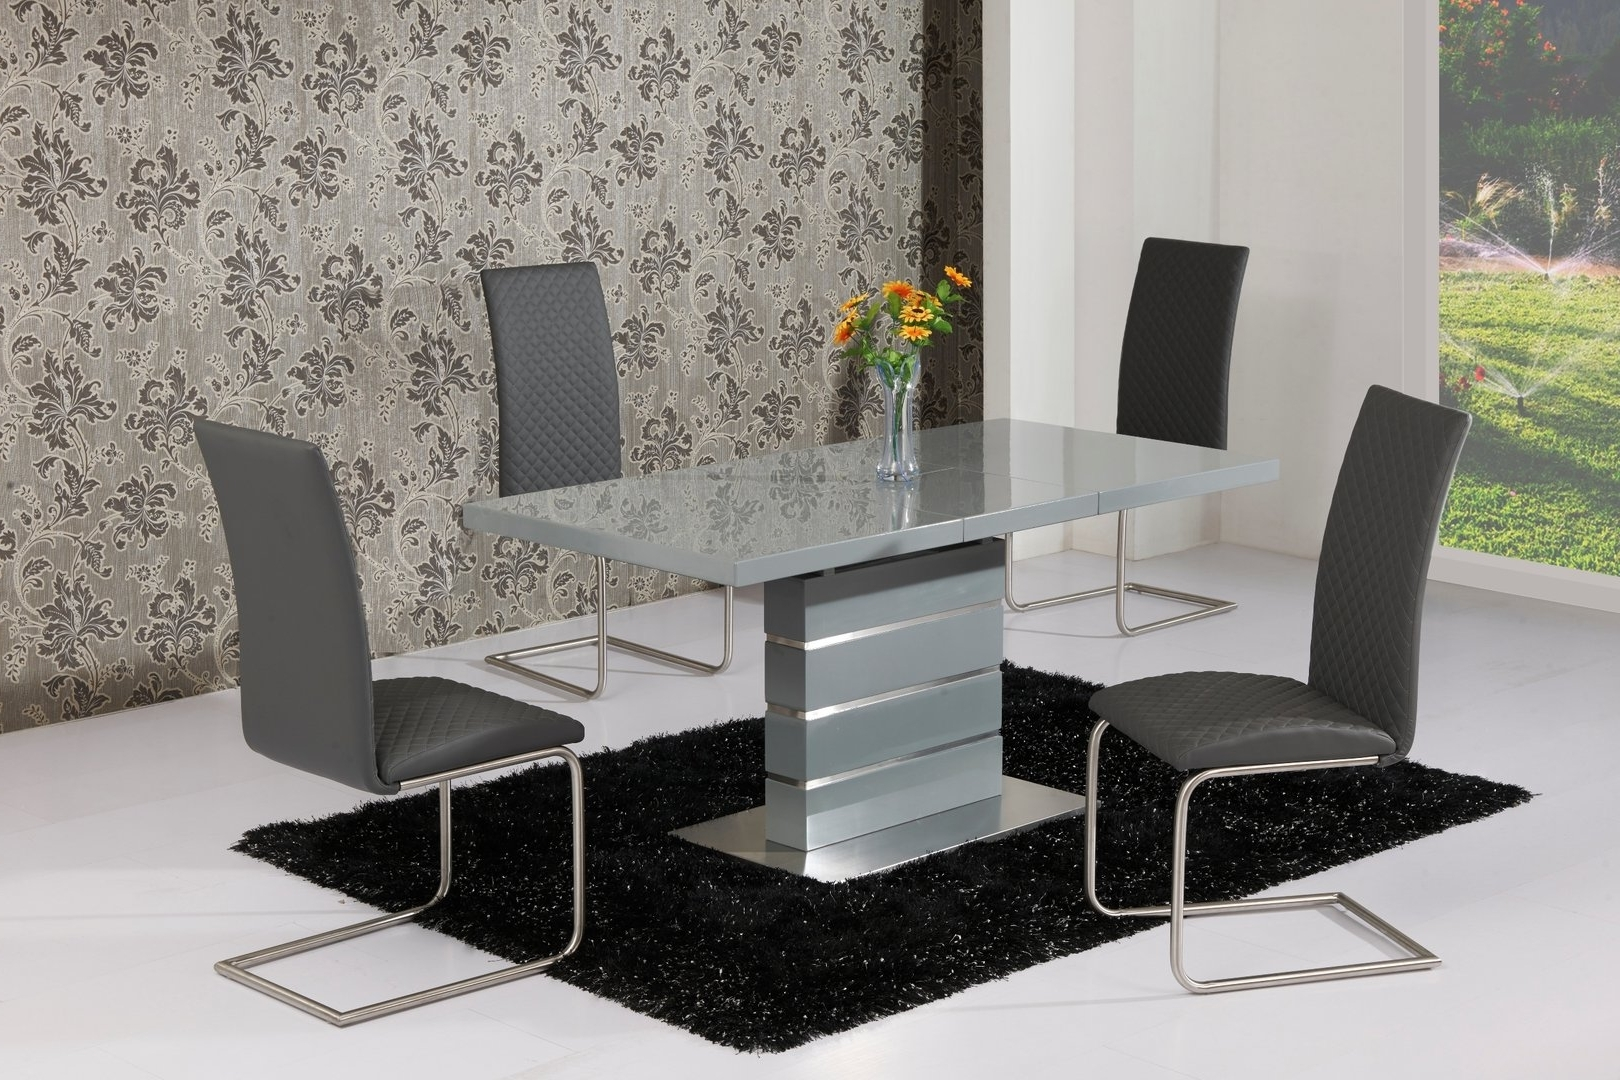 Black Gloss Dining Sets Inside Well Known Extending Grey High Gloss Dining Table And 4 Grey Chairs (Gallery 5 of 25)